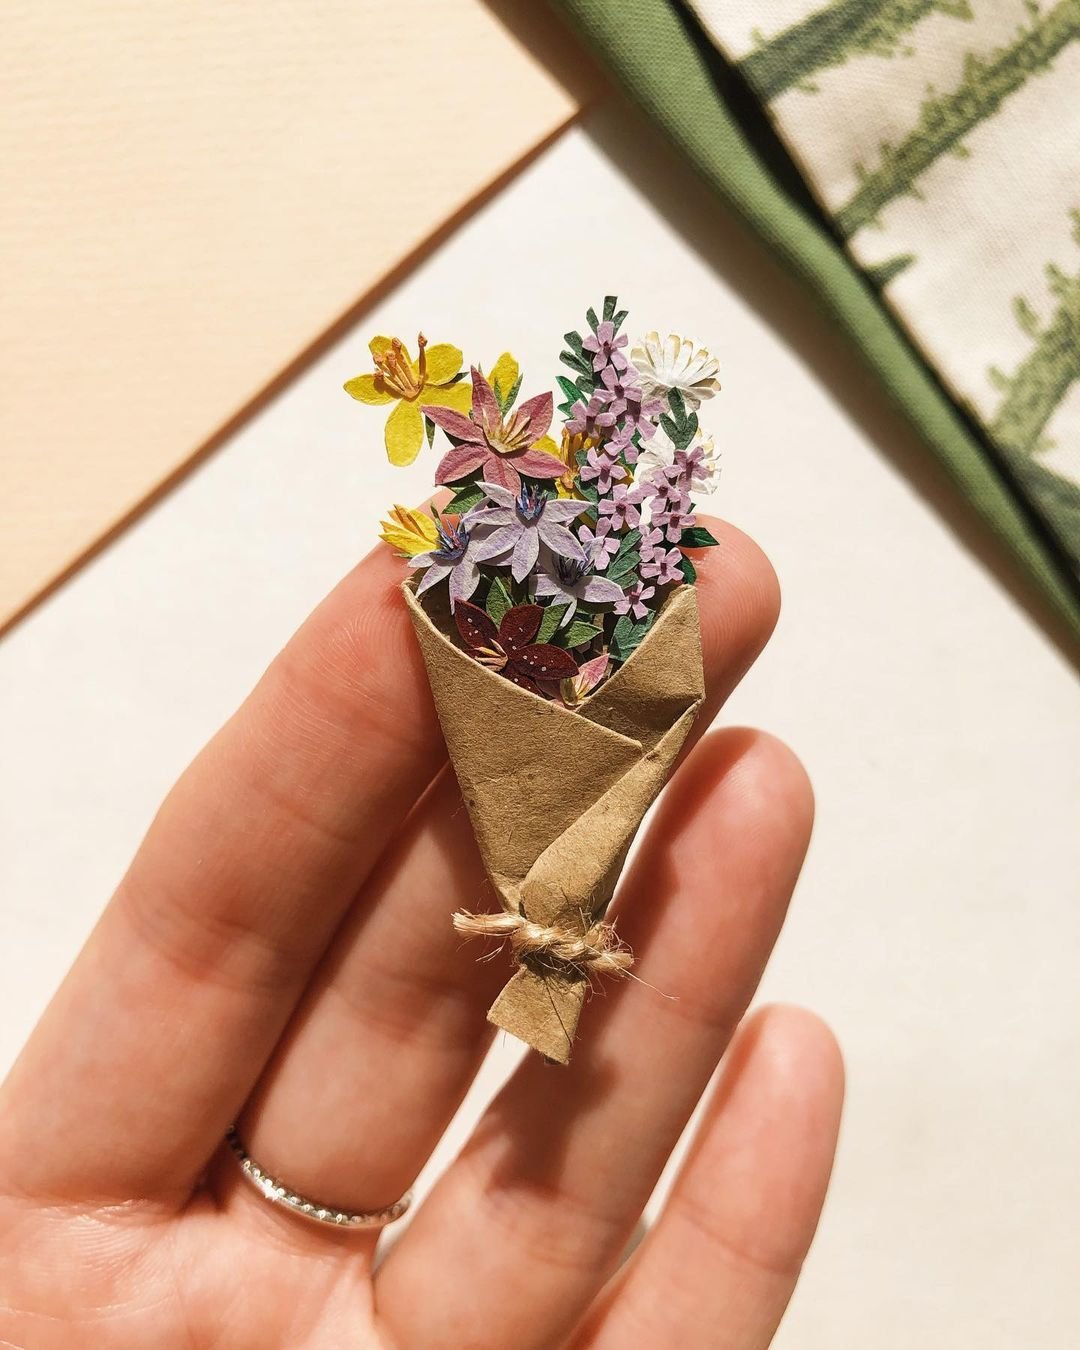 Tania Lissova's Endearing Tiny Paper Plants Will Stay In Bloom Forever